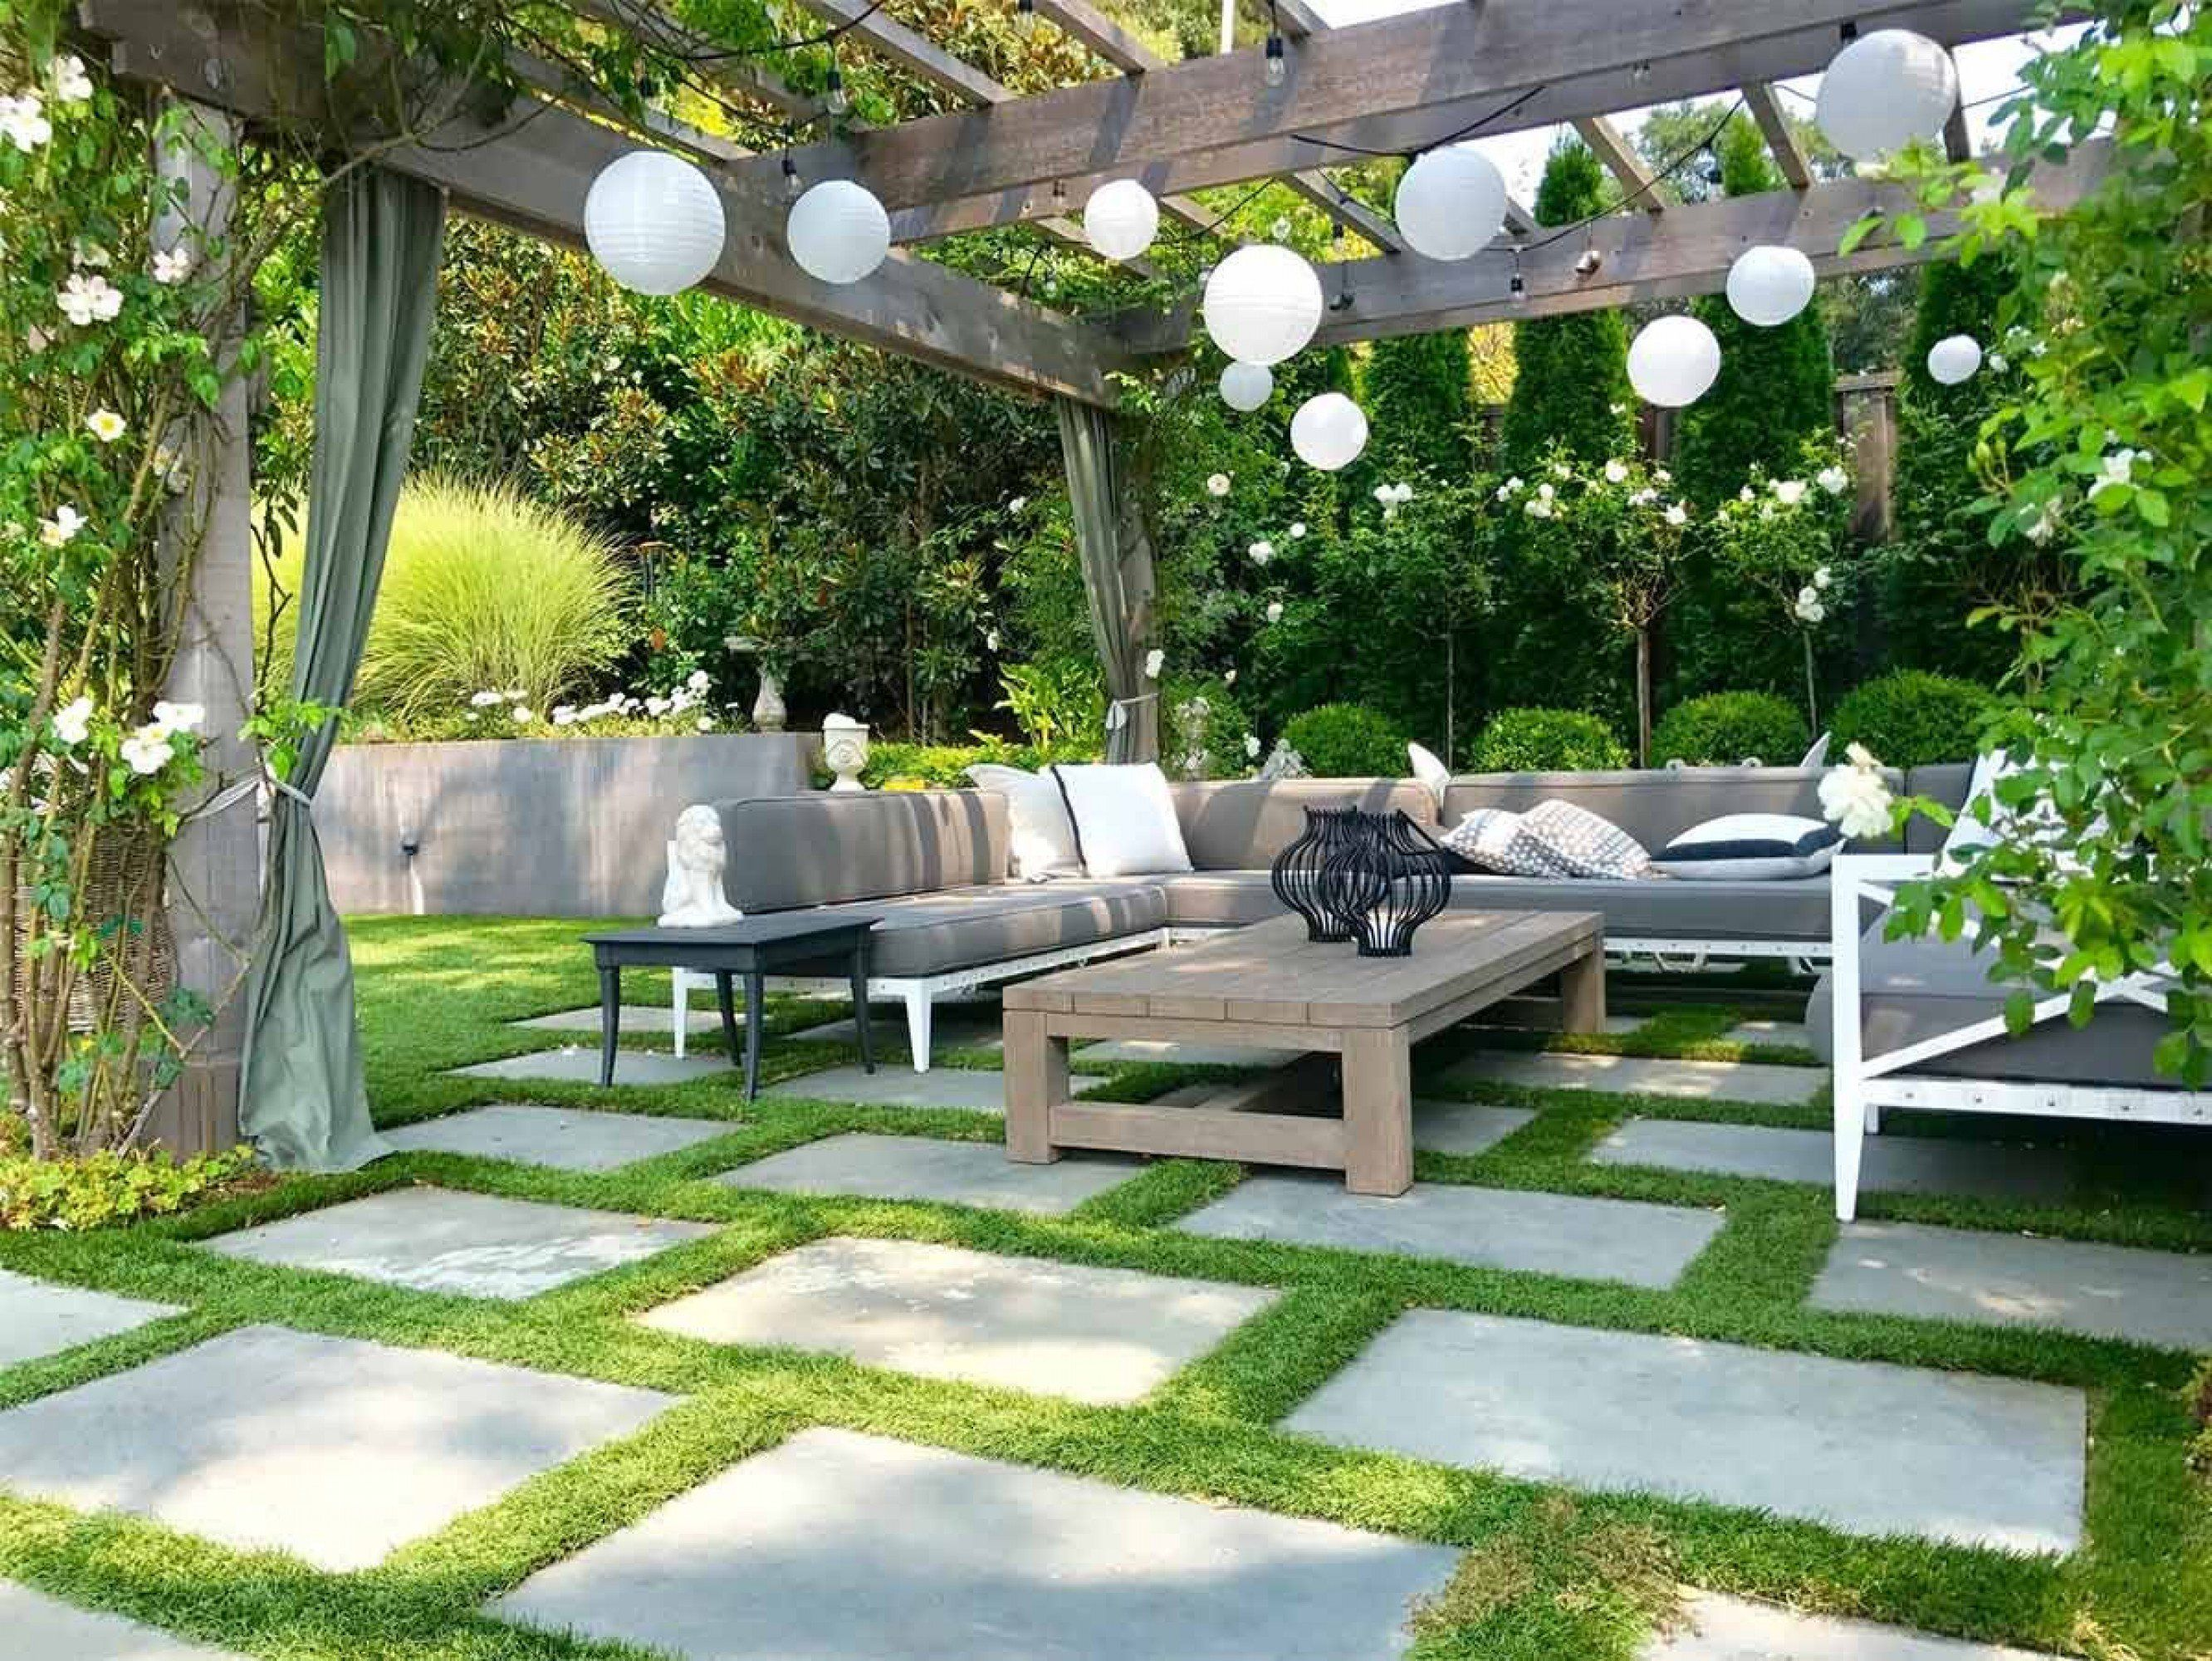 Best And Beautiful 25 Diy Landscaping Design Ideas On A Budget Landscaping Inspiration Easy Garden Easy Landscaping